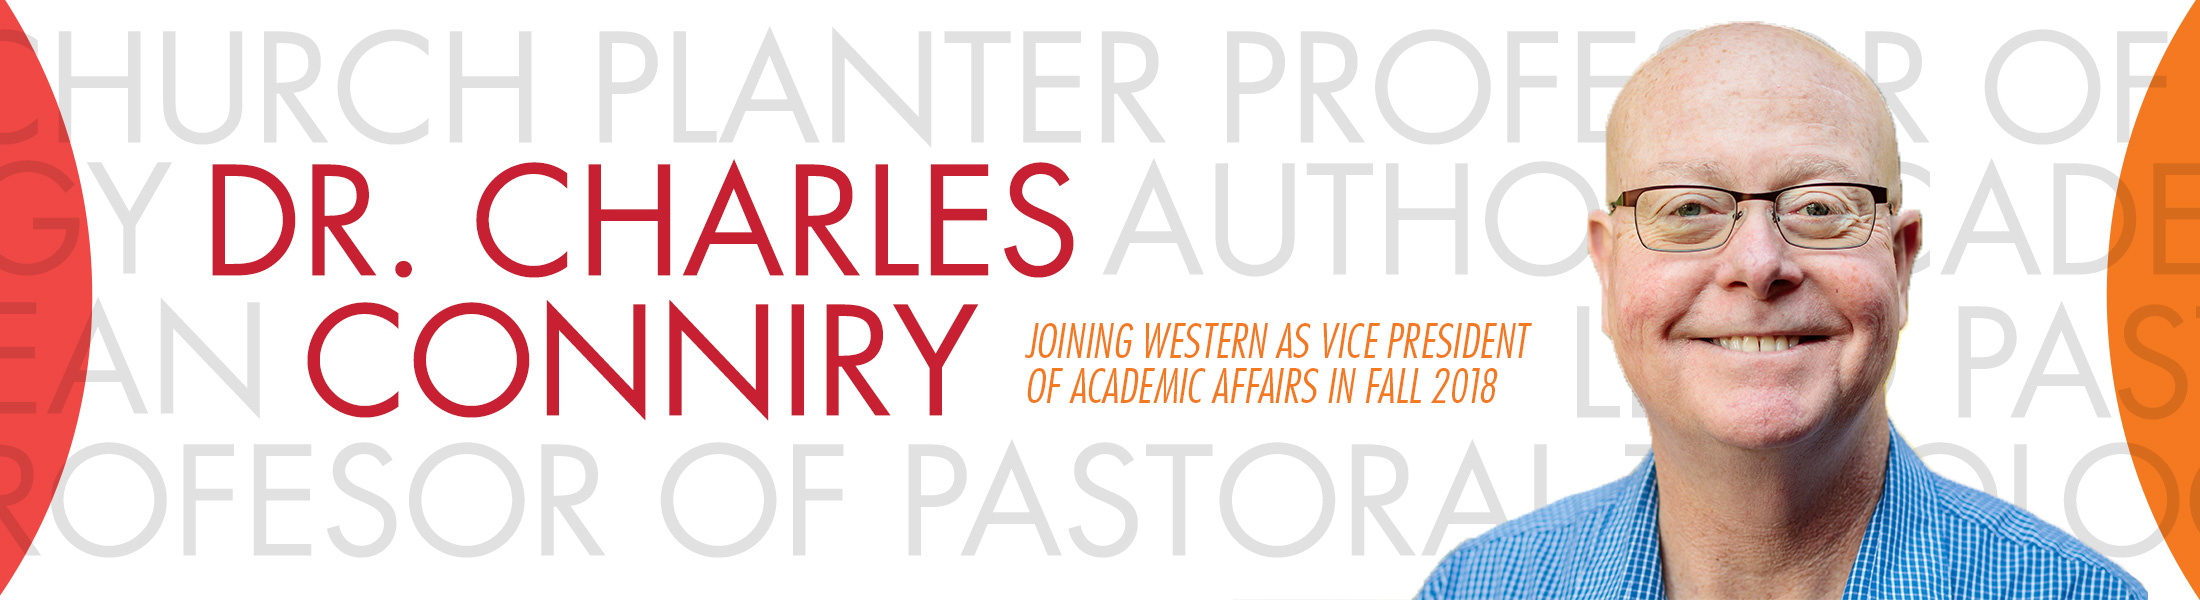 Dr. Charles Conniry joins Western Seminary as Vice President of Academic Affairs in Fall 2018